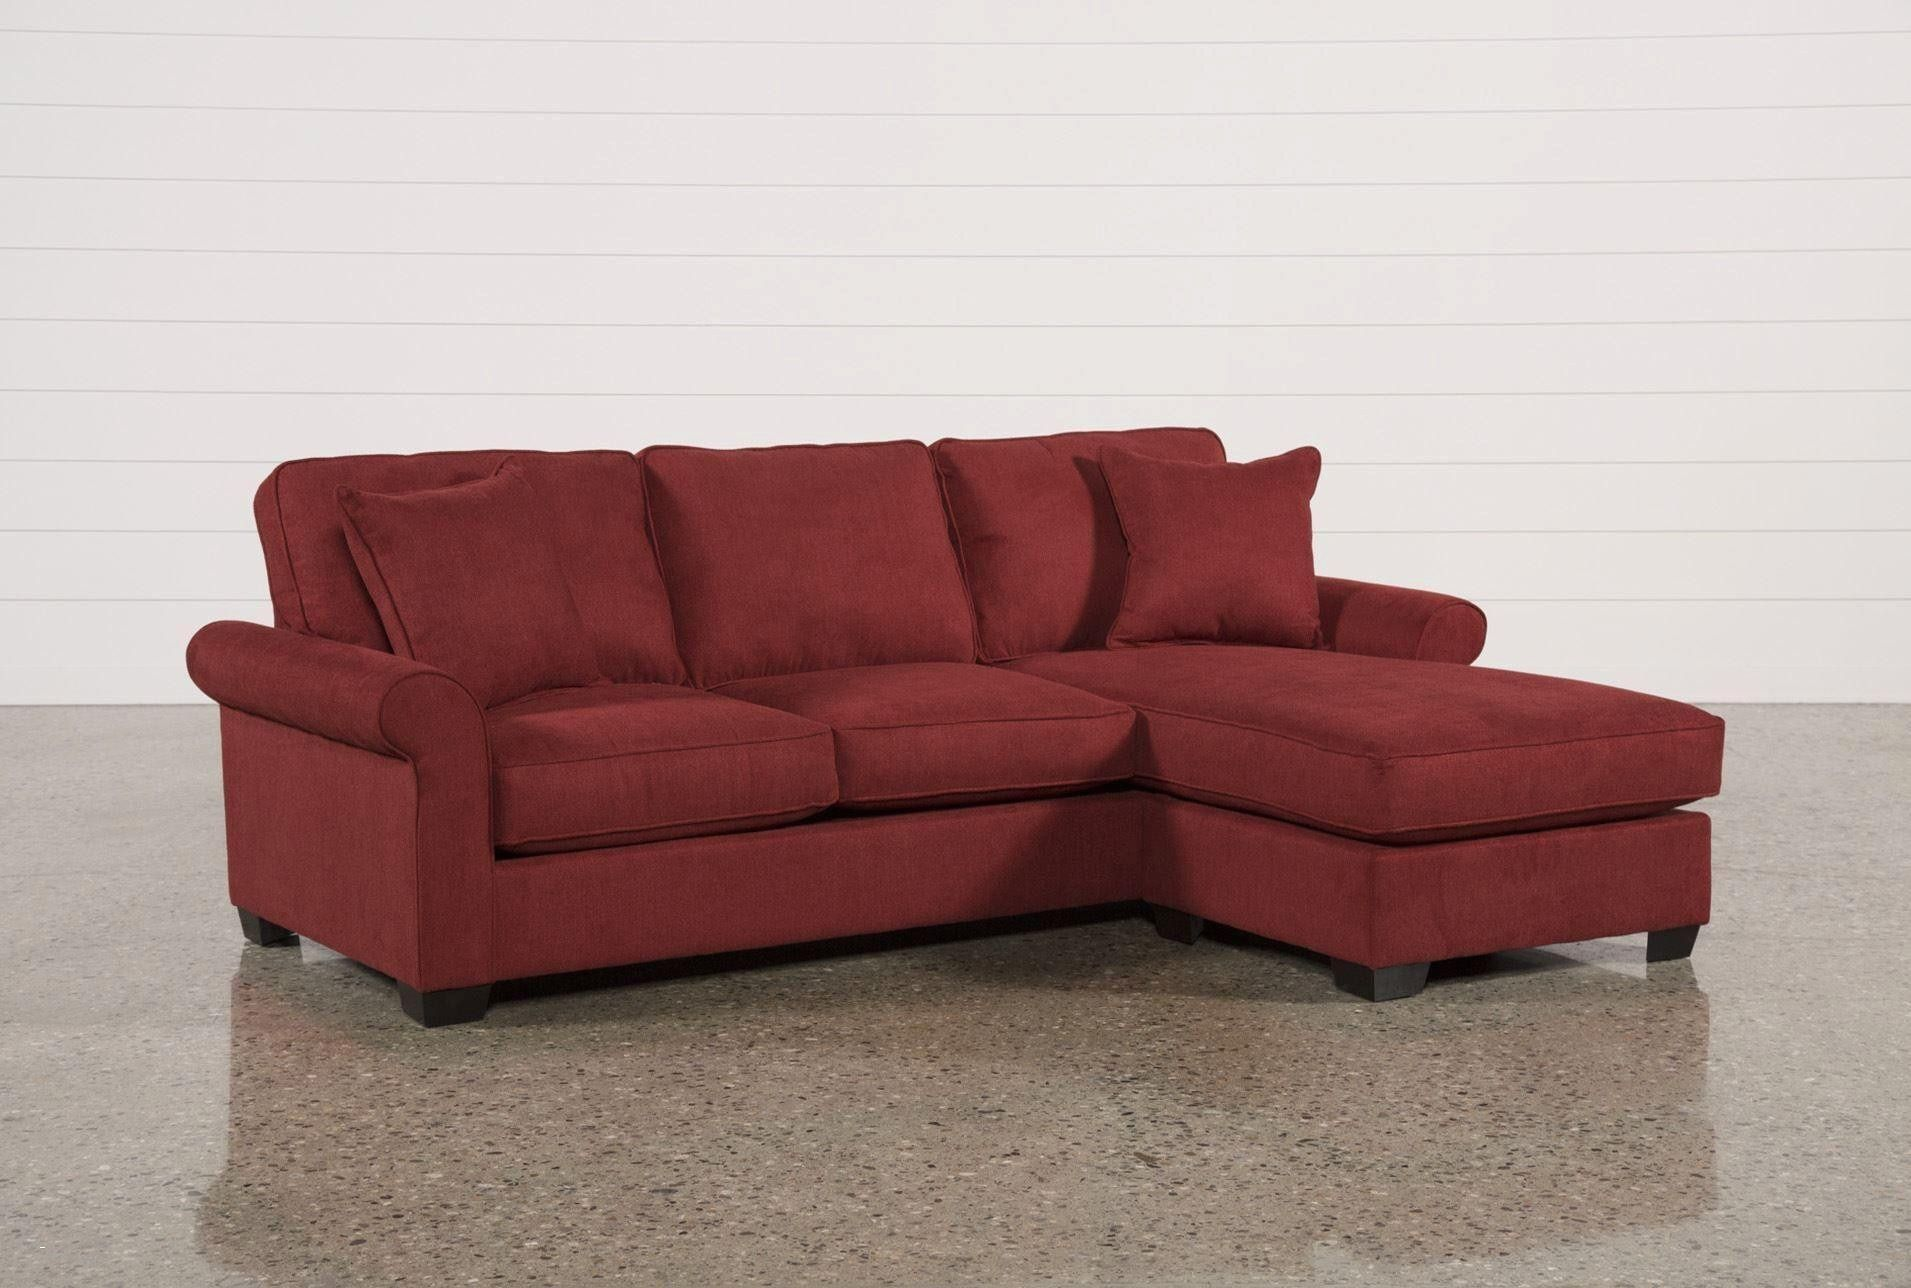 900 Sofa Ideen Sofa Couch Möbel Sofa Design